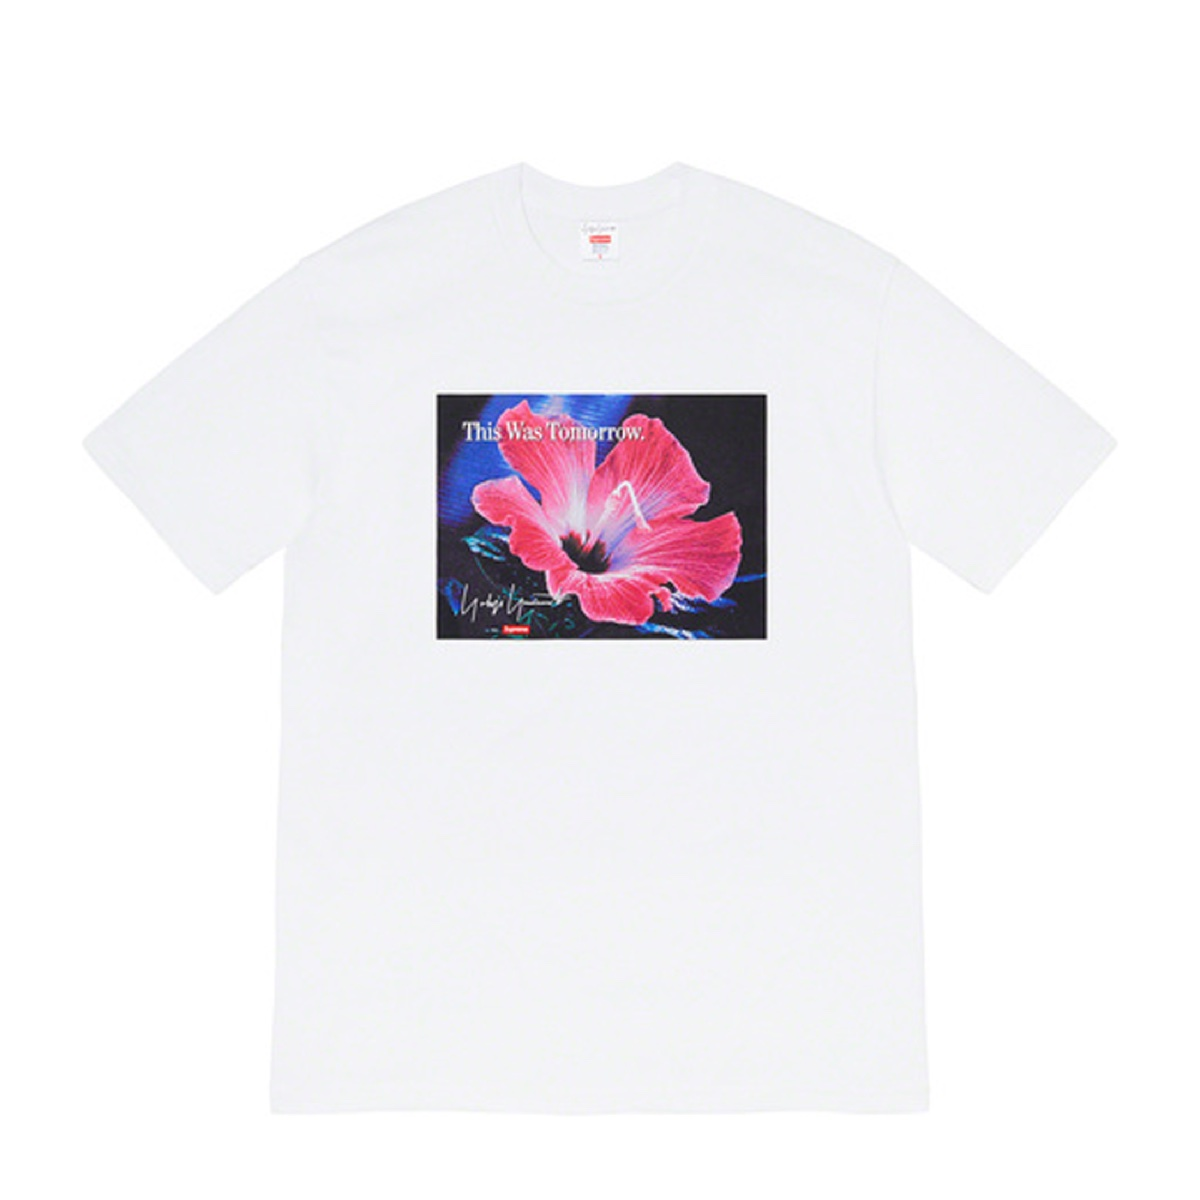 Supreme Yohji Yamamoto This Was Tomorrow Tee White